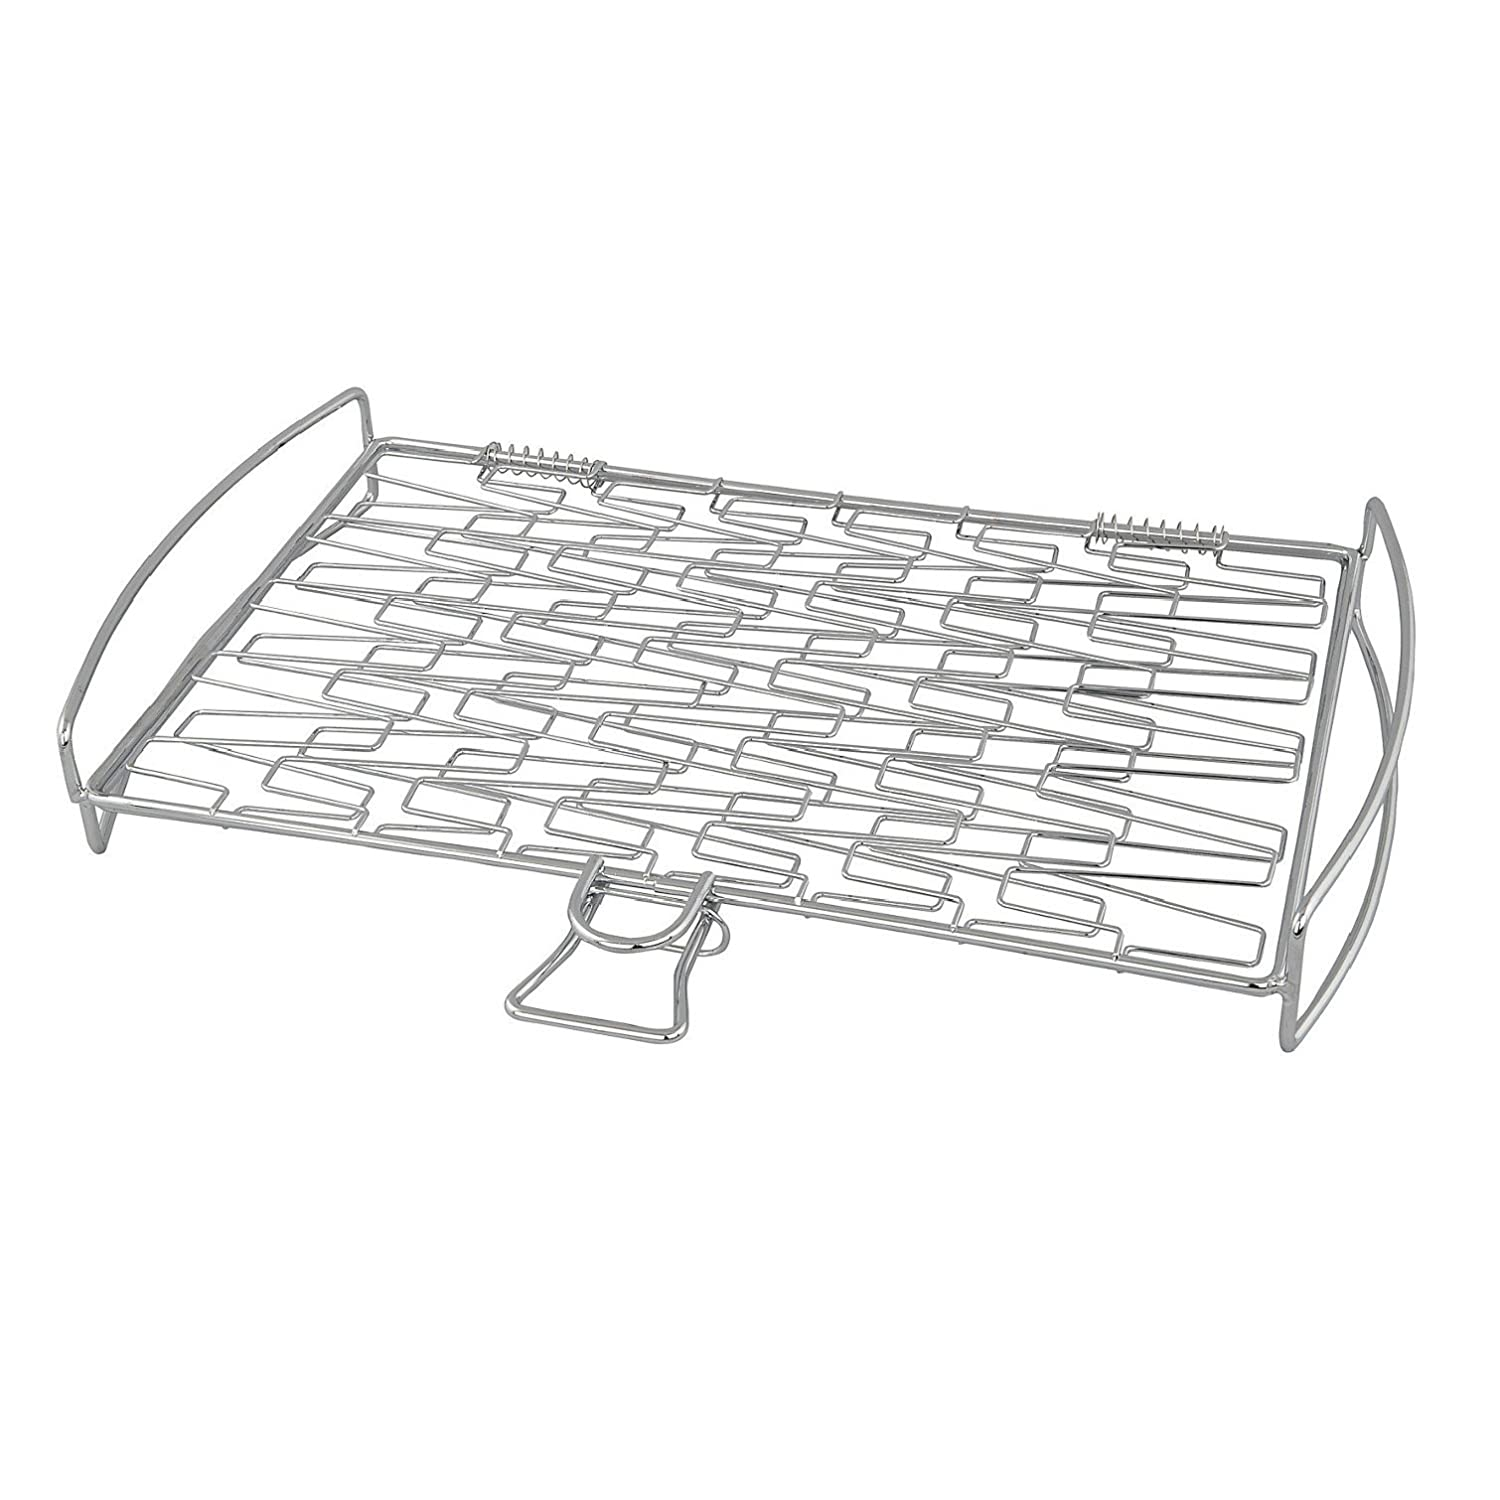 Campingaz Gourmet Barbecue Fish Grid 2000014579